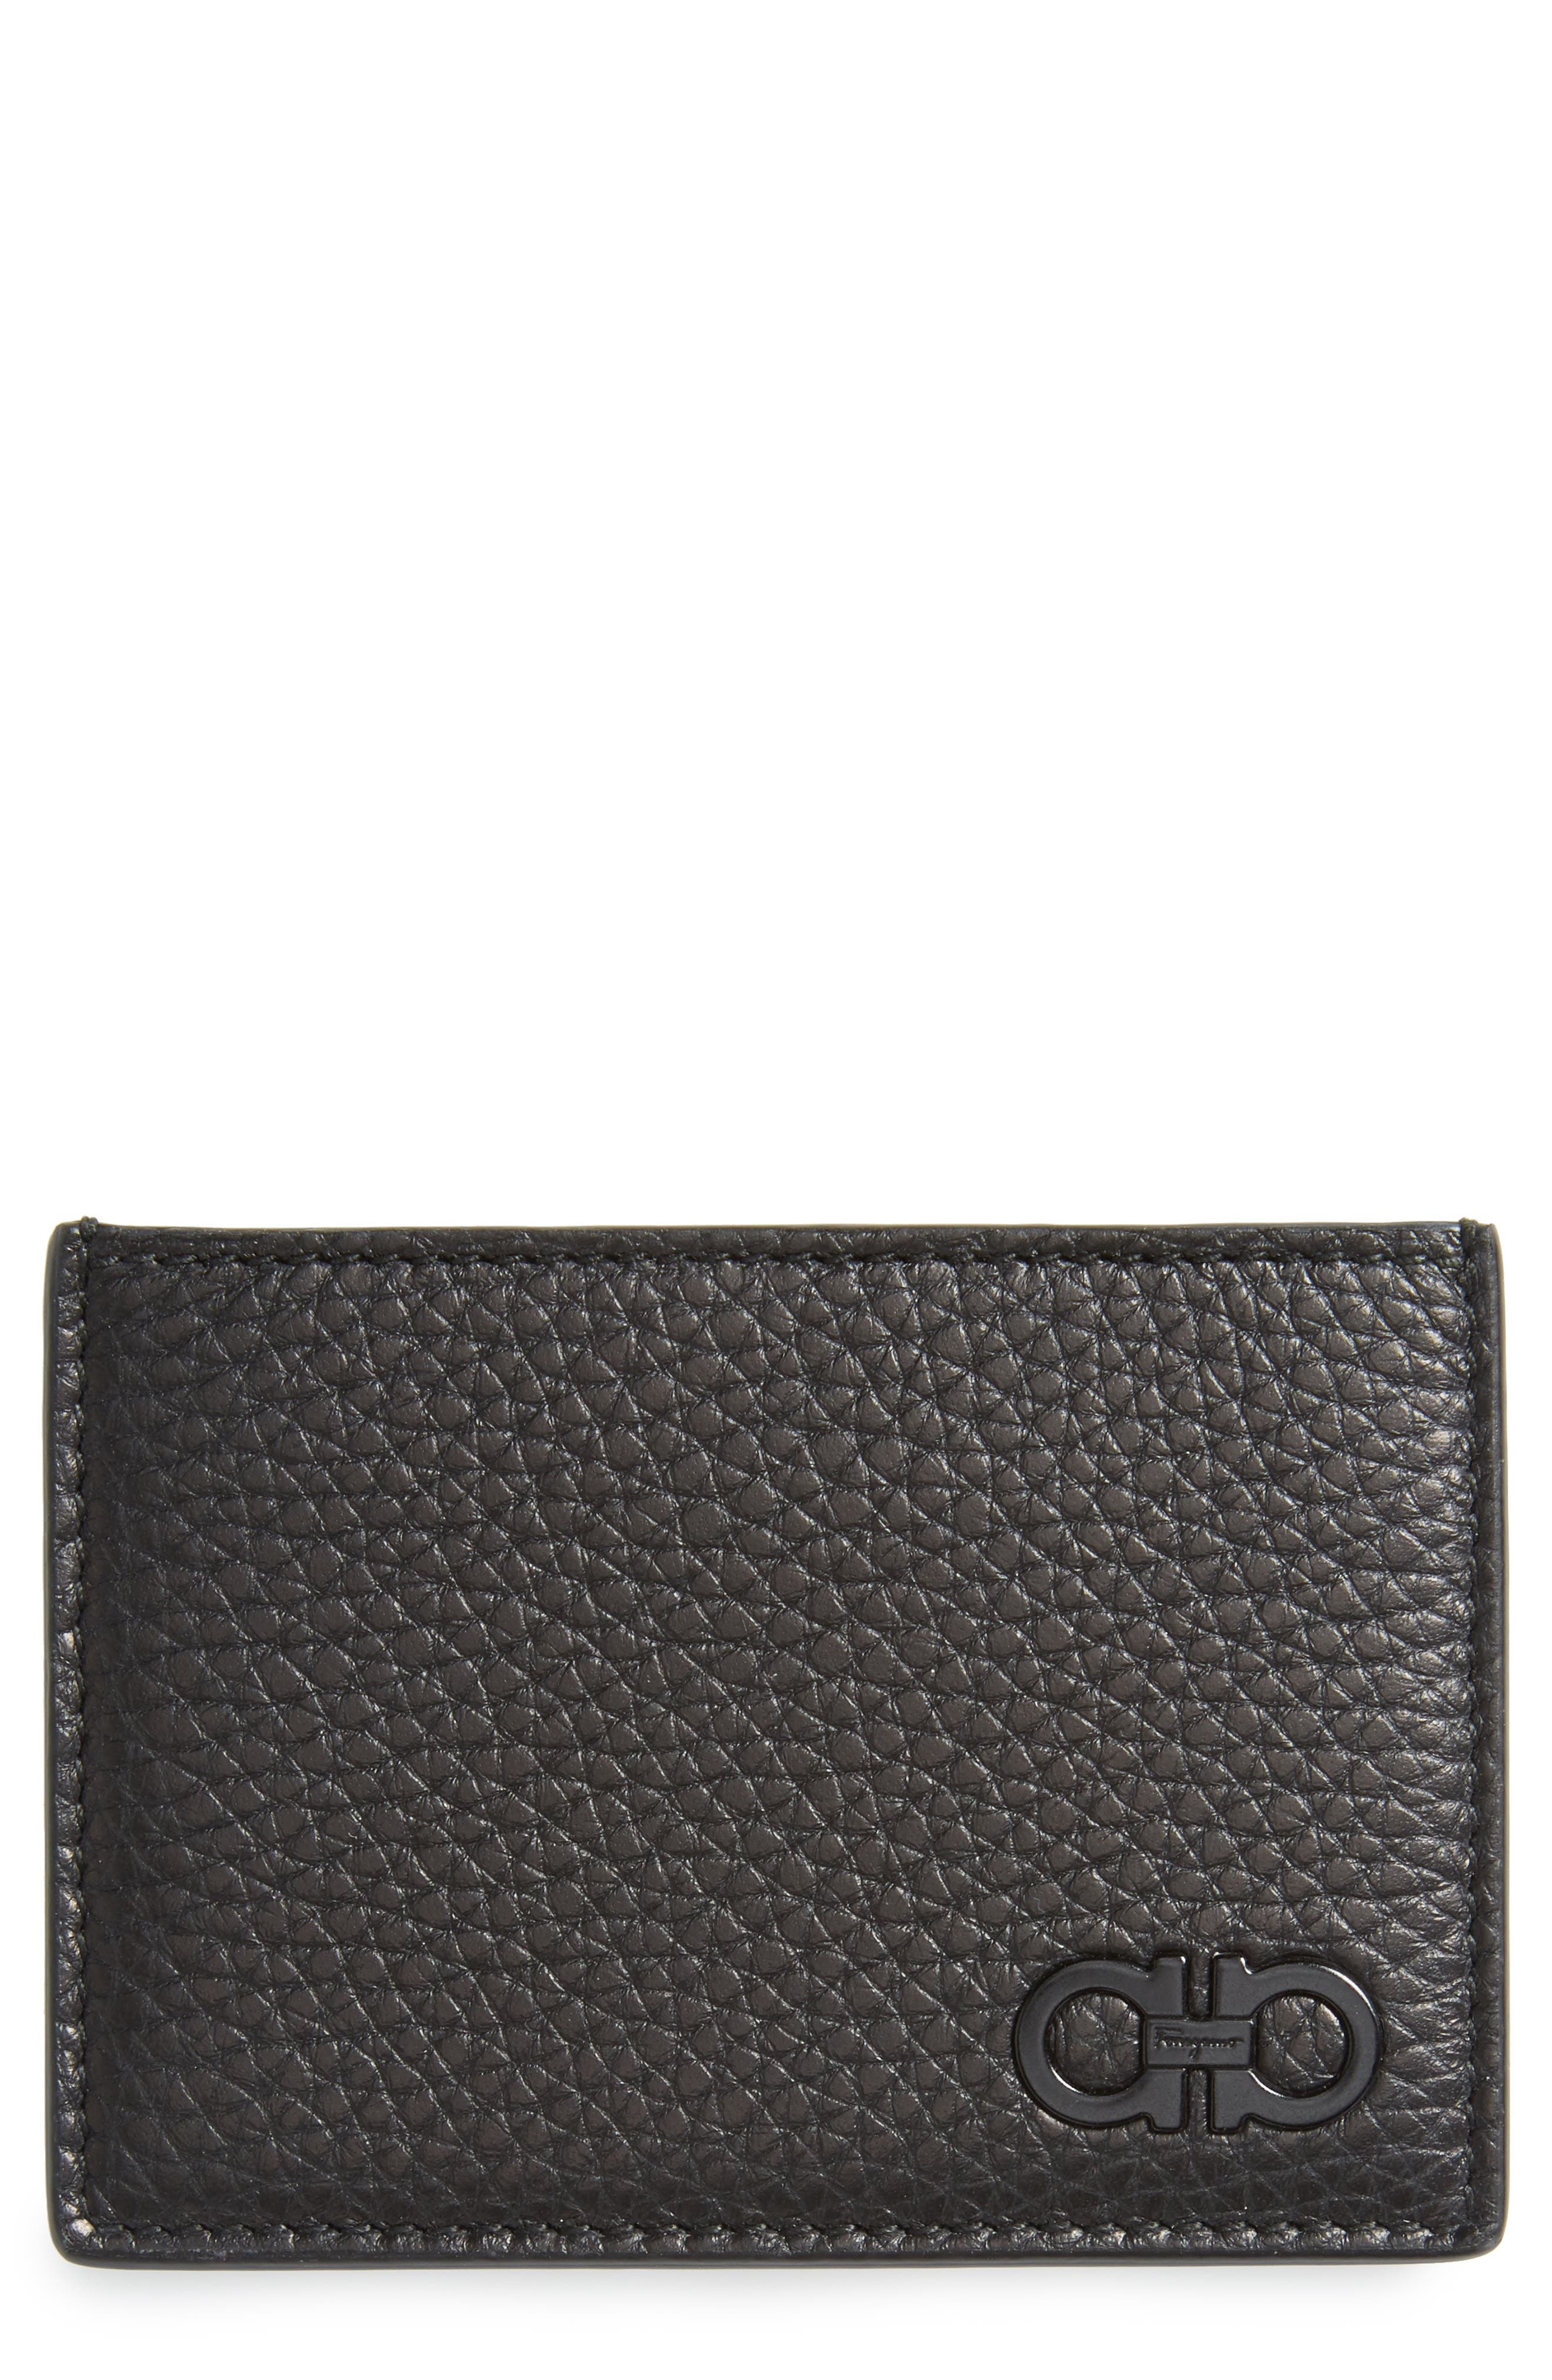 Calfskin Leather Card Case,                             Main thumbnail 1, color,                             Black